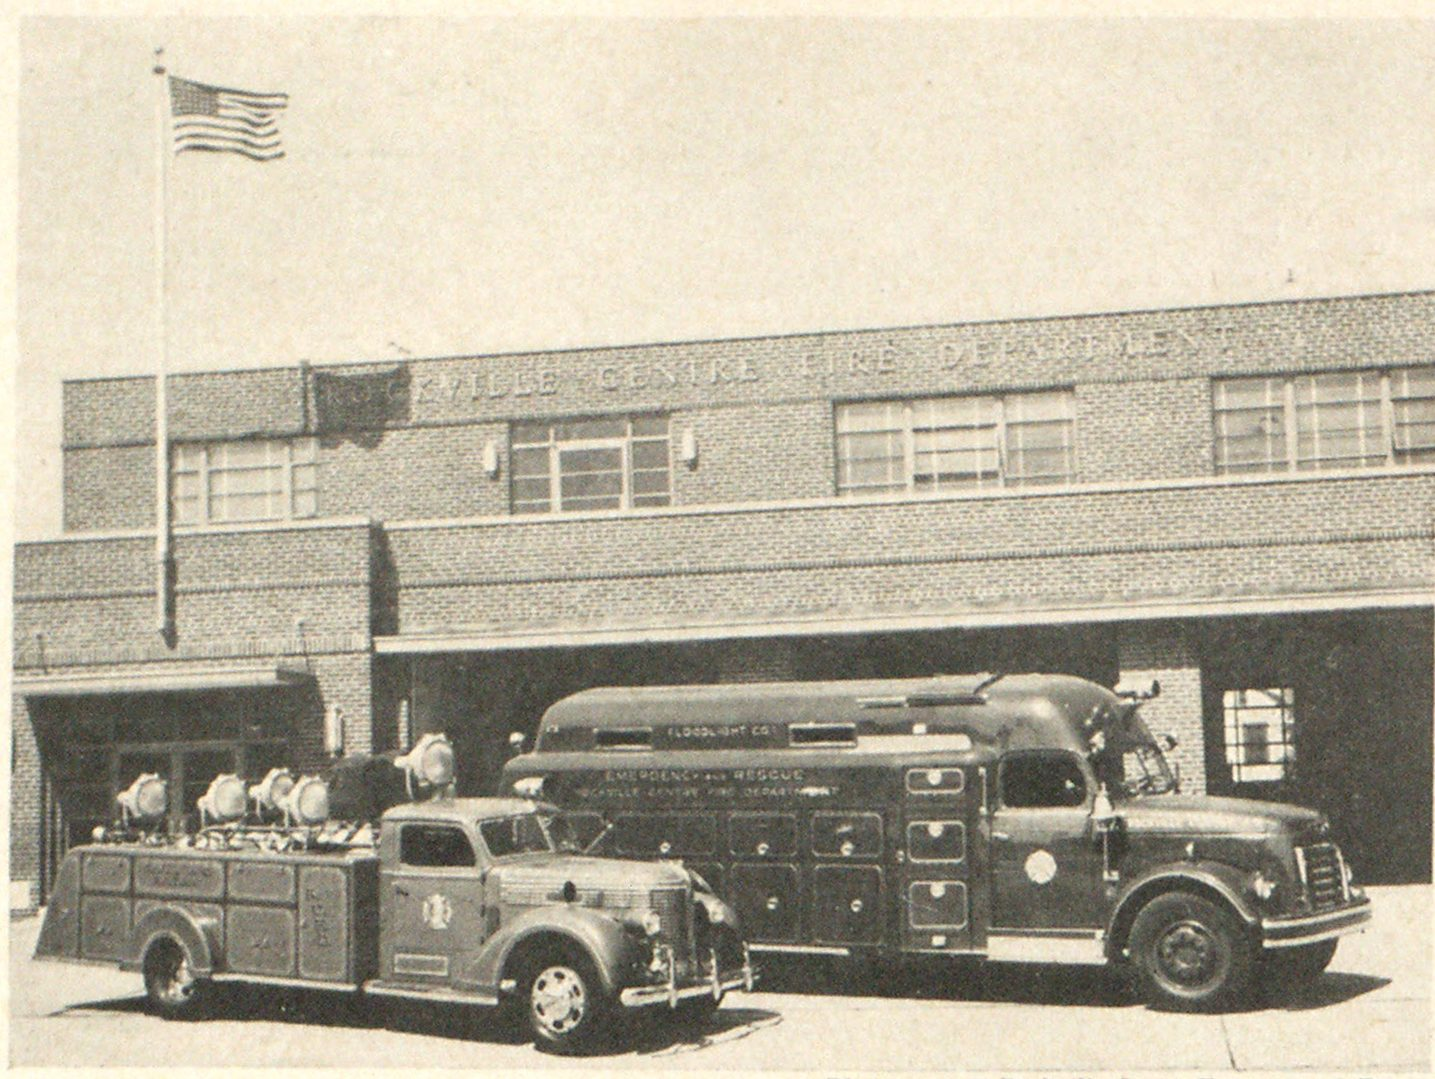 The first Emergency and Floodlight of the Rockville Centre, L. I., Fire Department, vintage 1940, alongside the recently installed streamlin ed unit in front of the department's attractive fire house. New truck is known as Emergency and Rescue Floodlight Co. No. I. Its captain is R. W. Boggs.